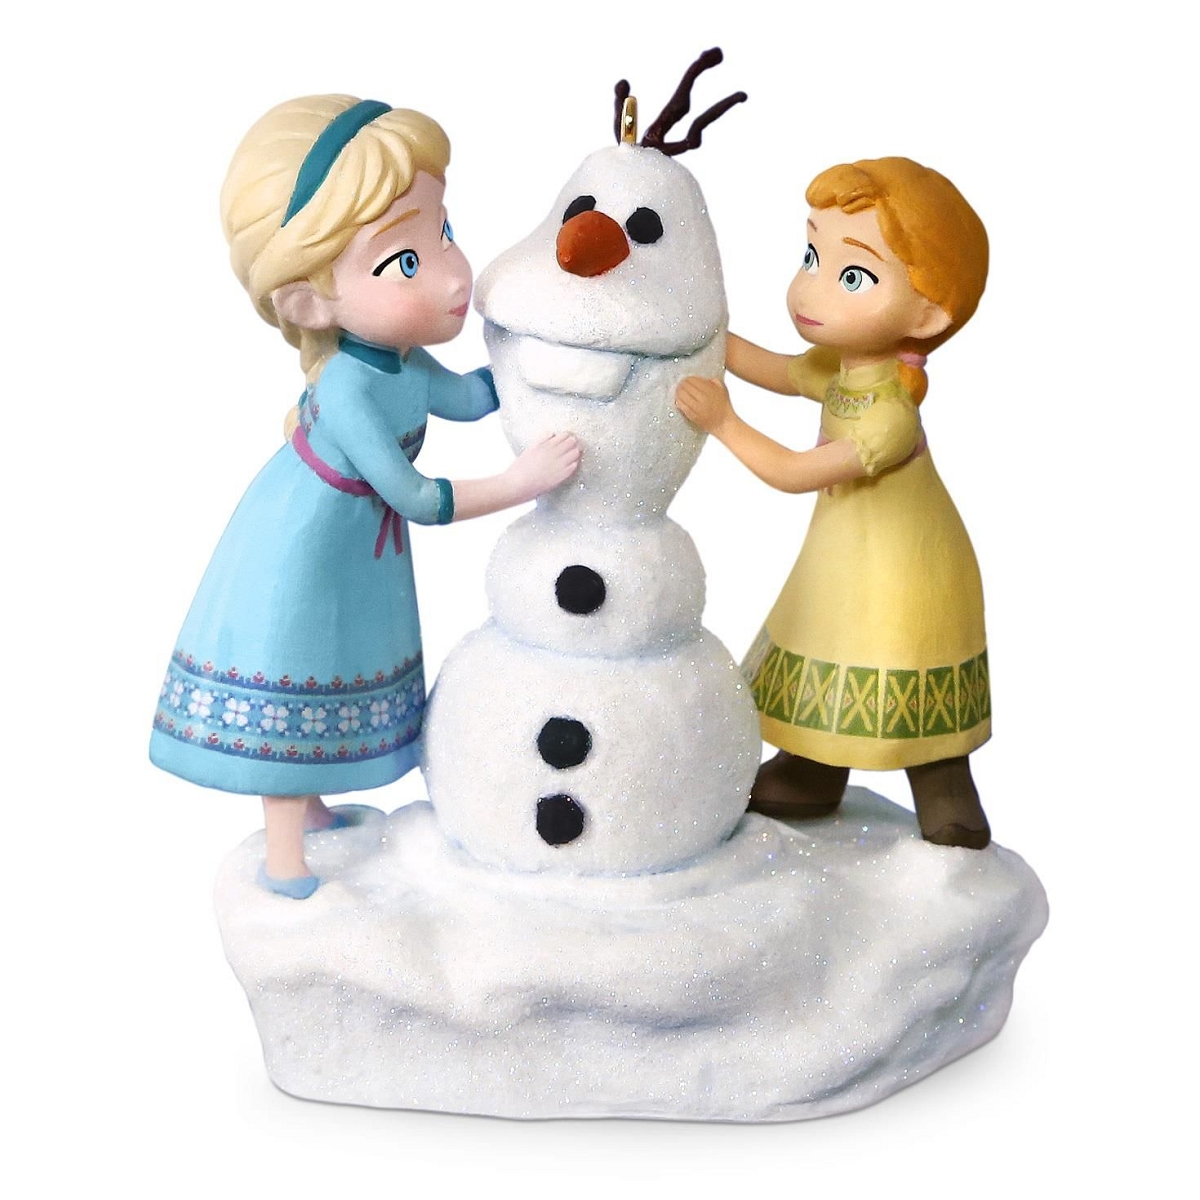 2016 Disney S Do You Want To Build A Snowman Hallmark